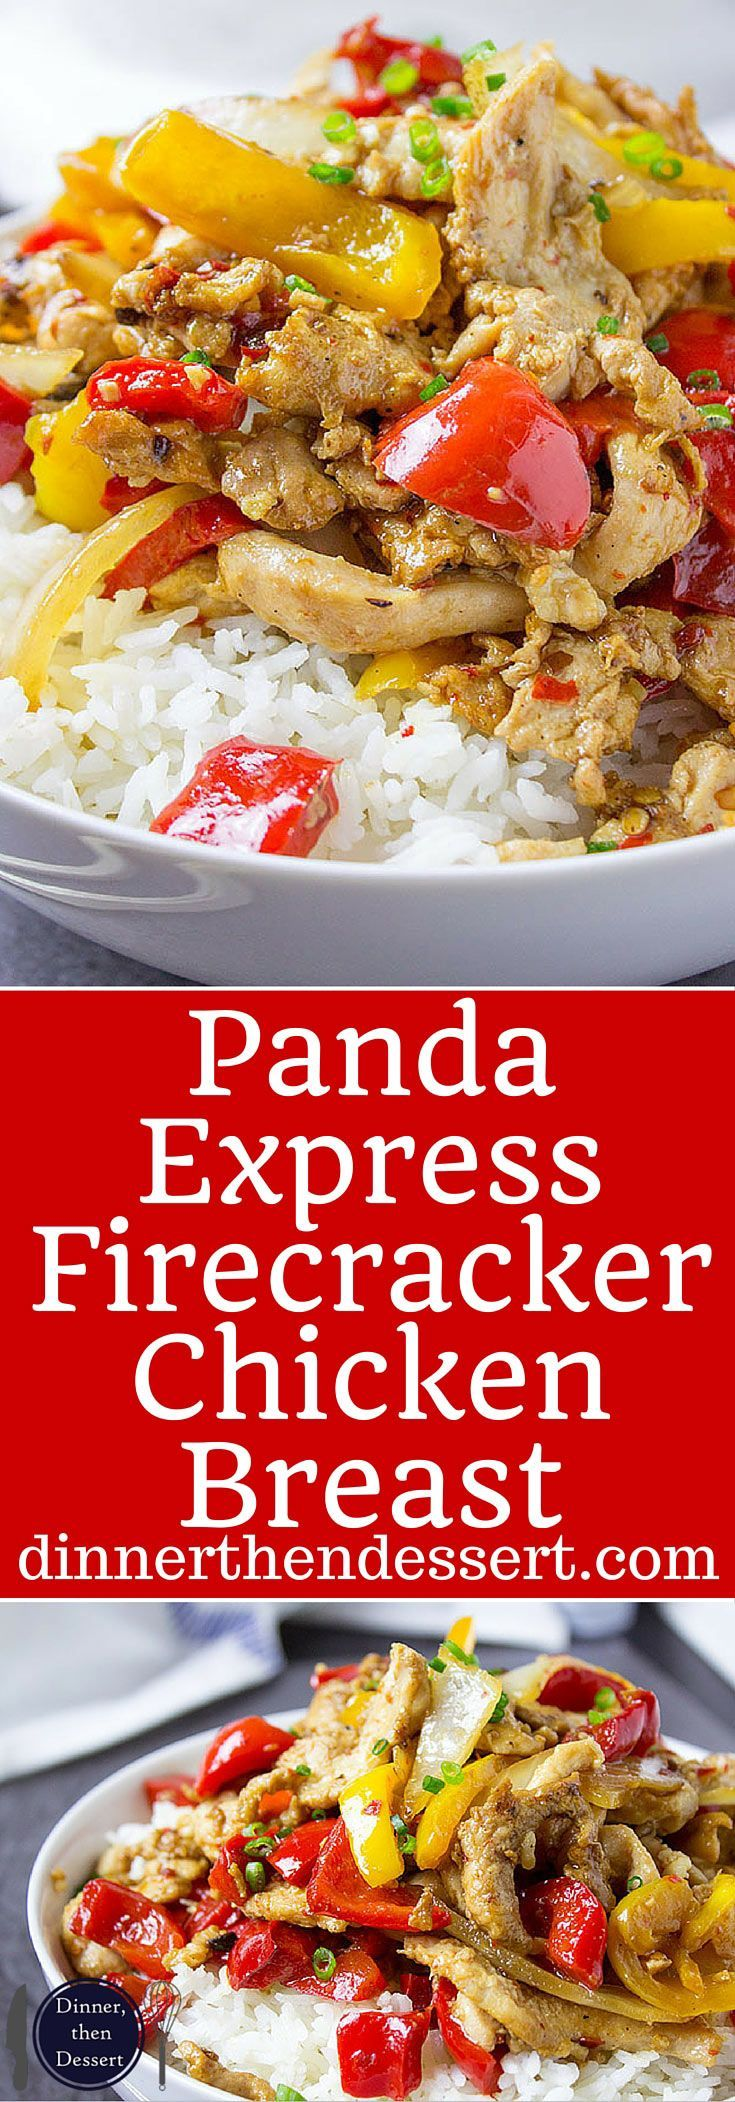 best 25+ panda express recipes ideas on pinterest | express rice